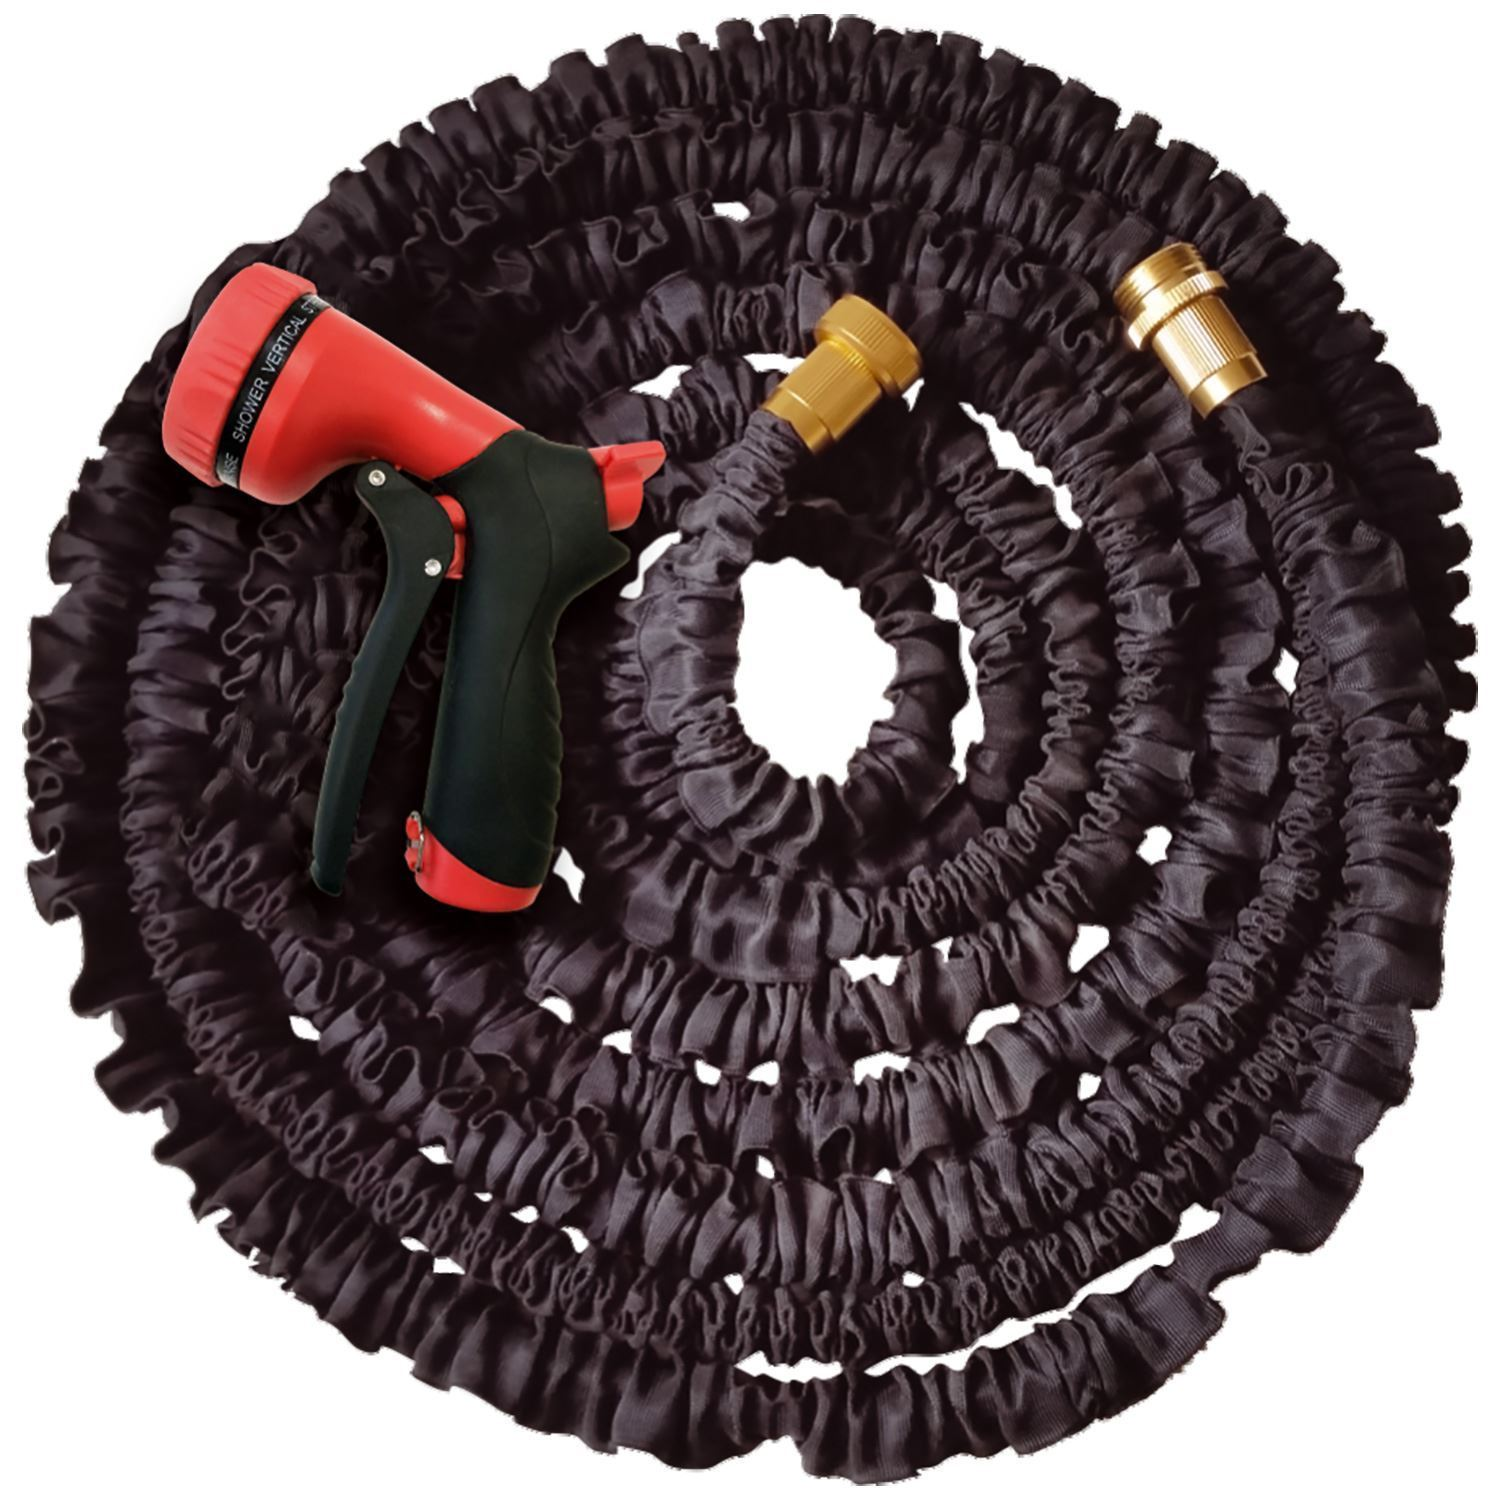 50ft 100ft 150ft expandable flexible garden hose pipe expanding quality fittings ebay Expandable garden hose 100 ft